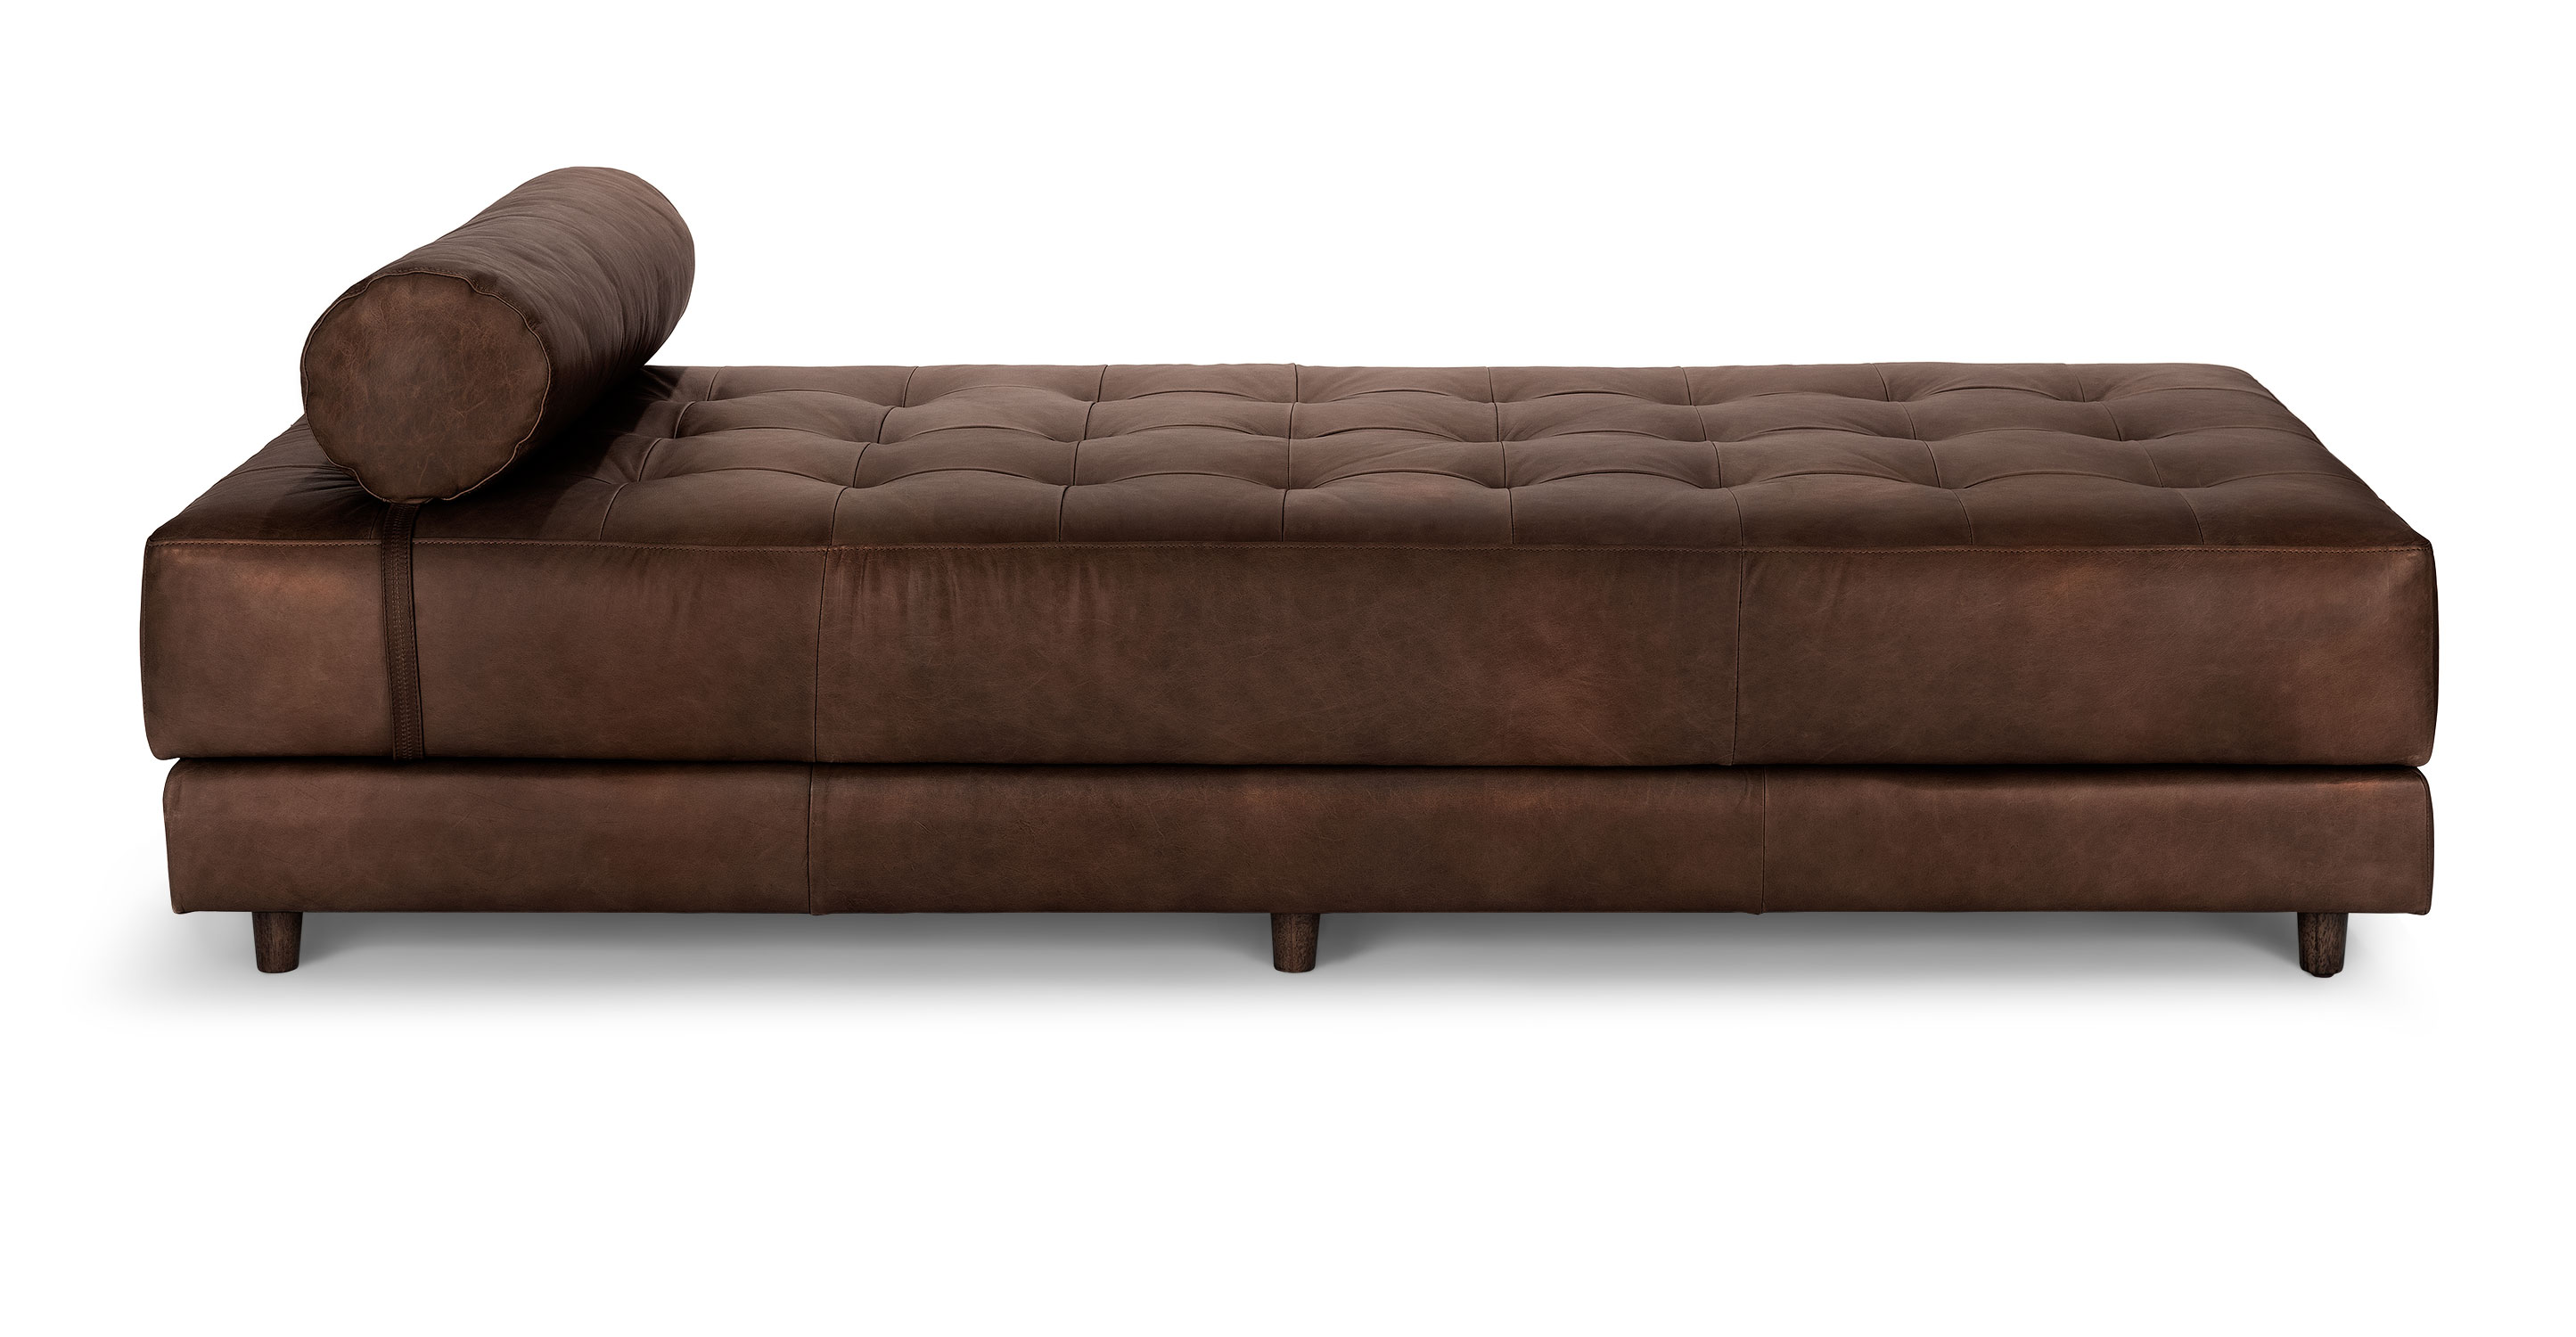 Sven Charme Chocolat Daybed Sofas Article Modern